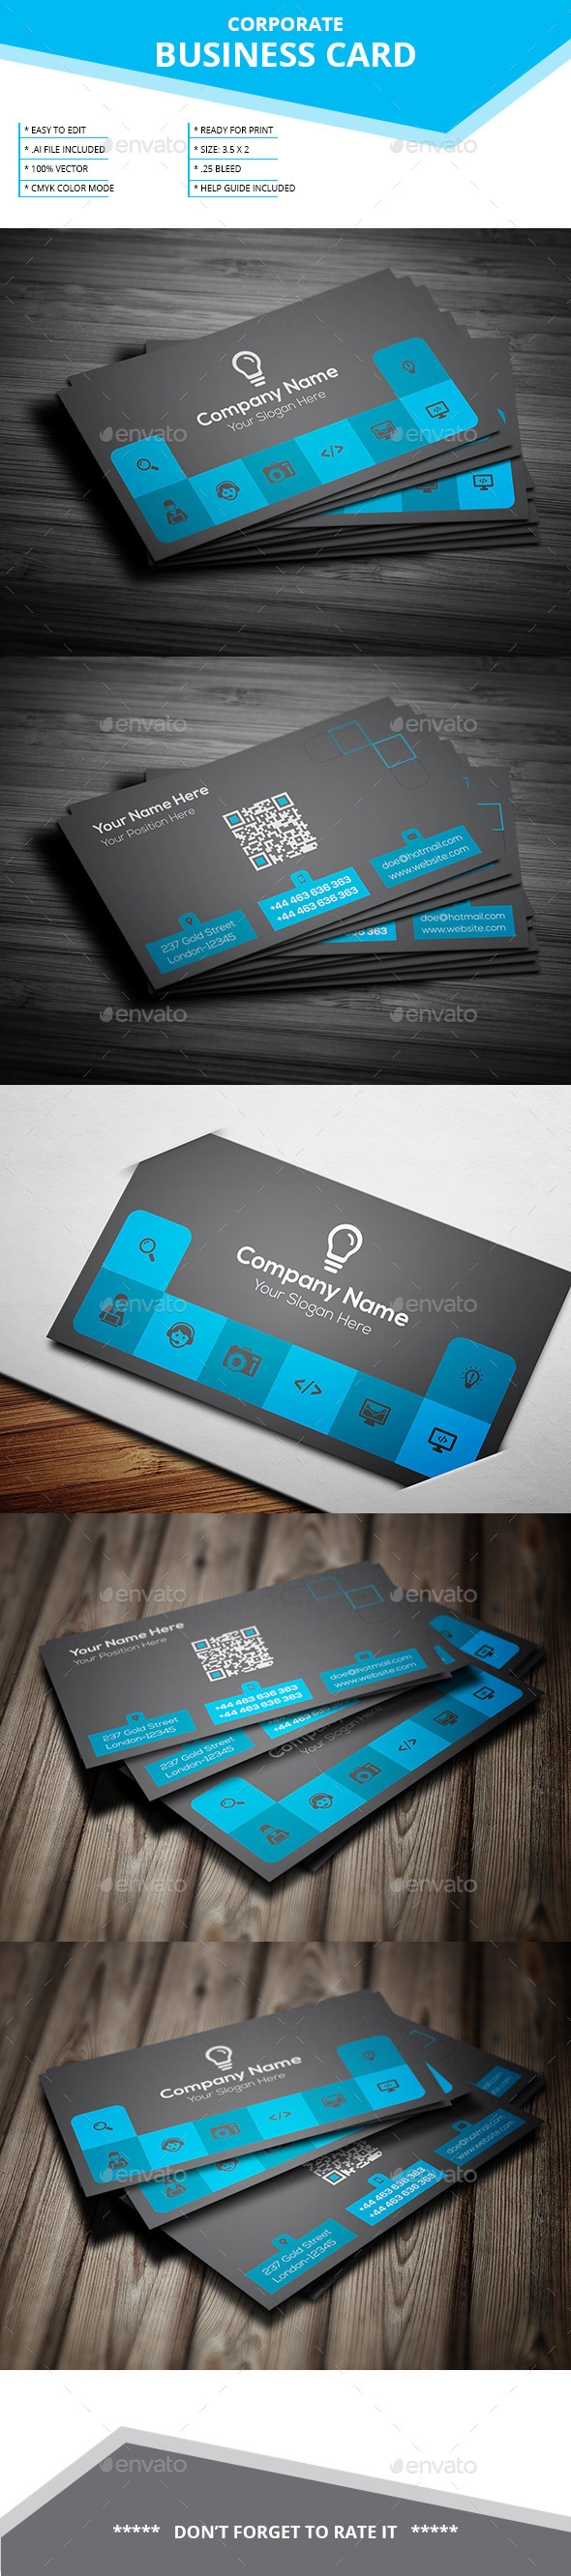 Corporate Business Card _ Vol-22 - Business Cards Print Templates